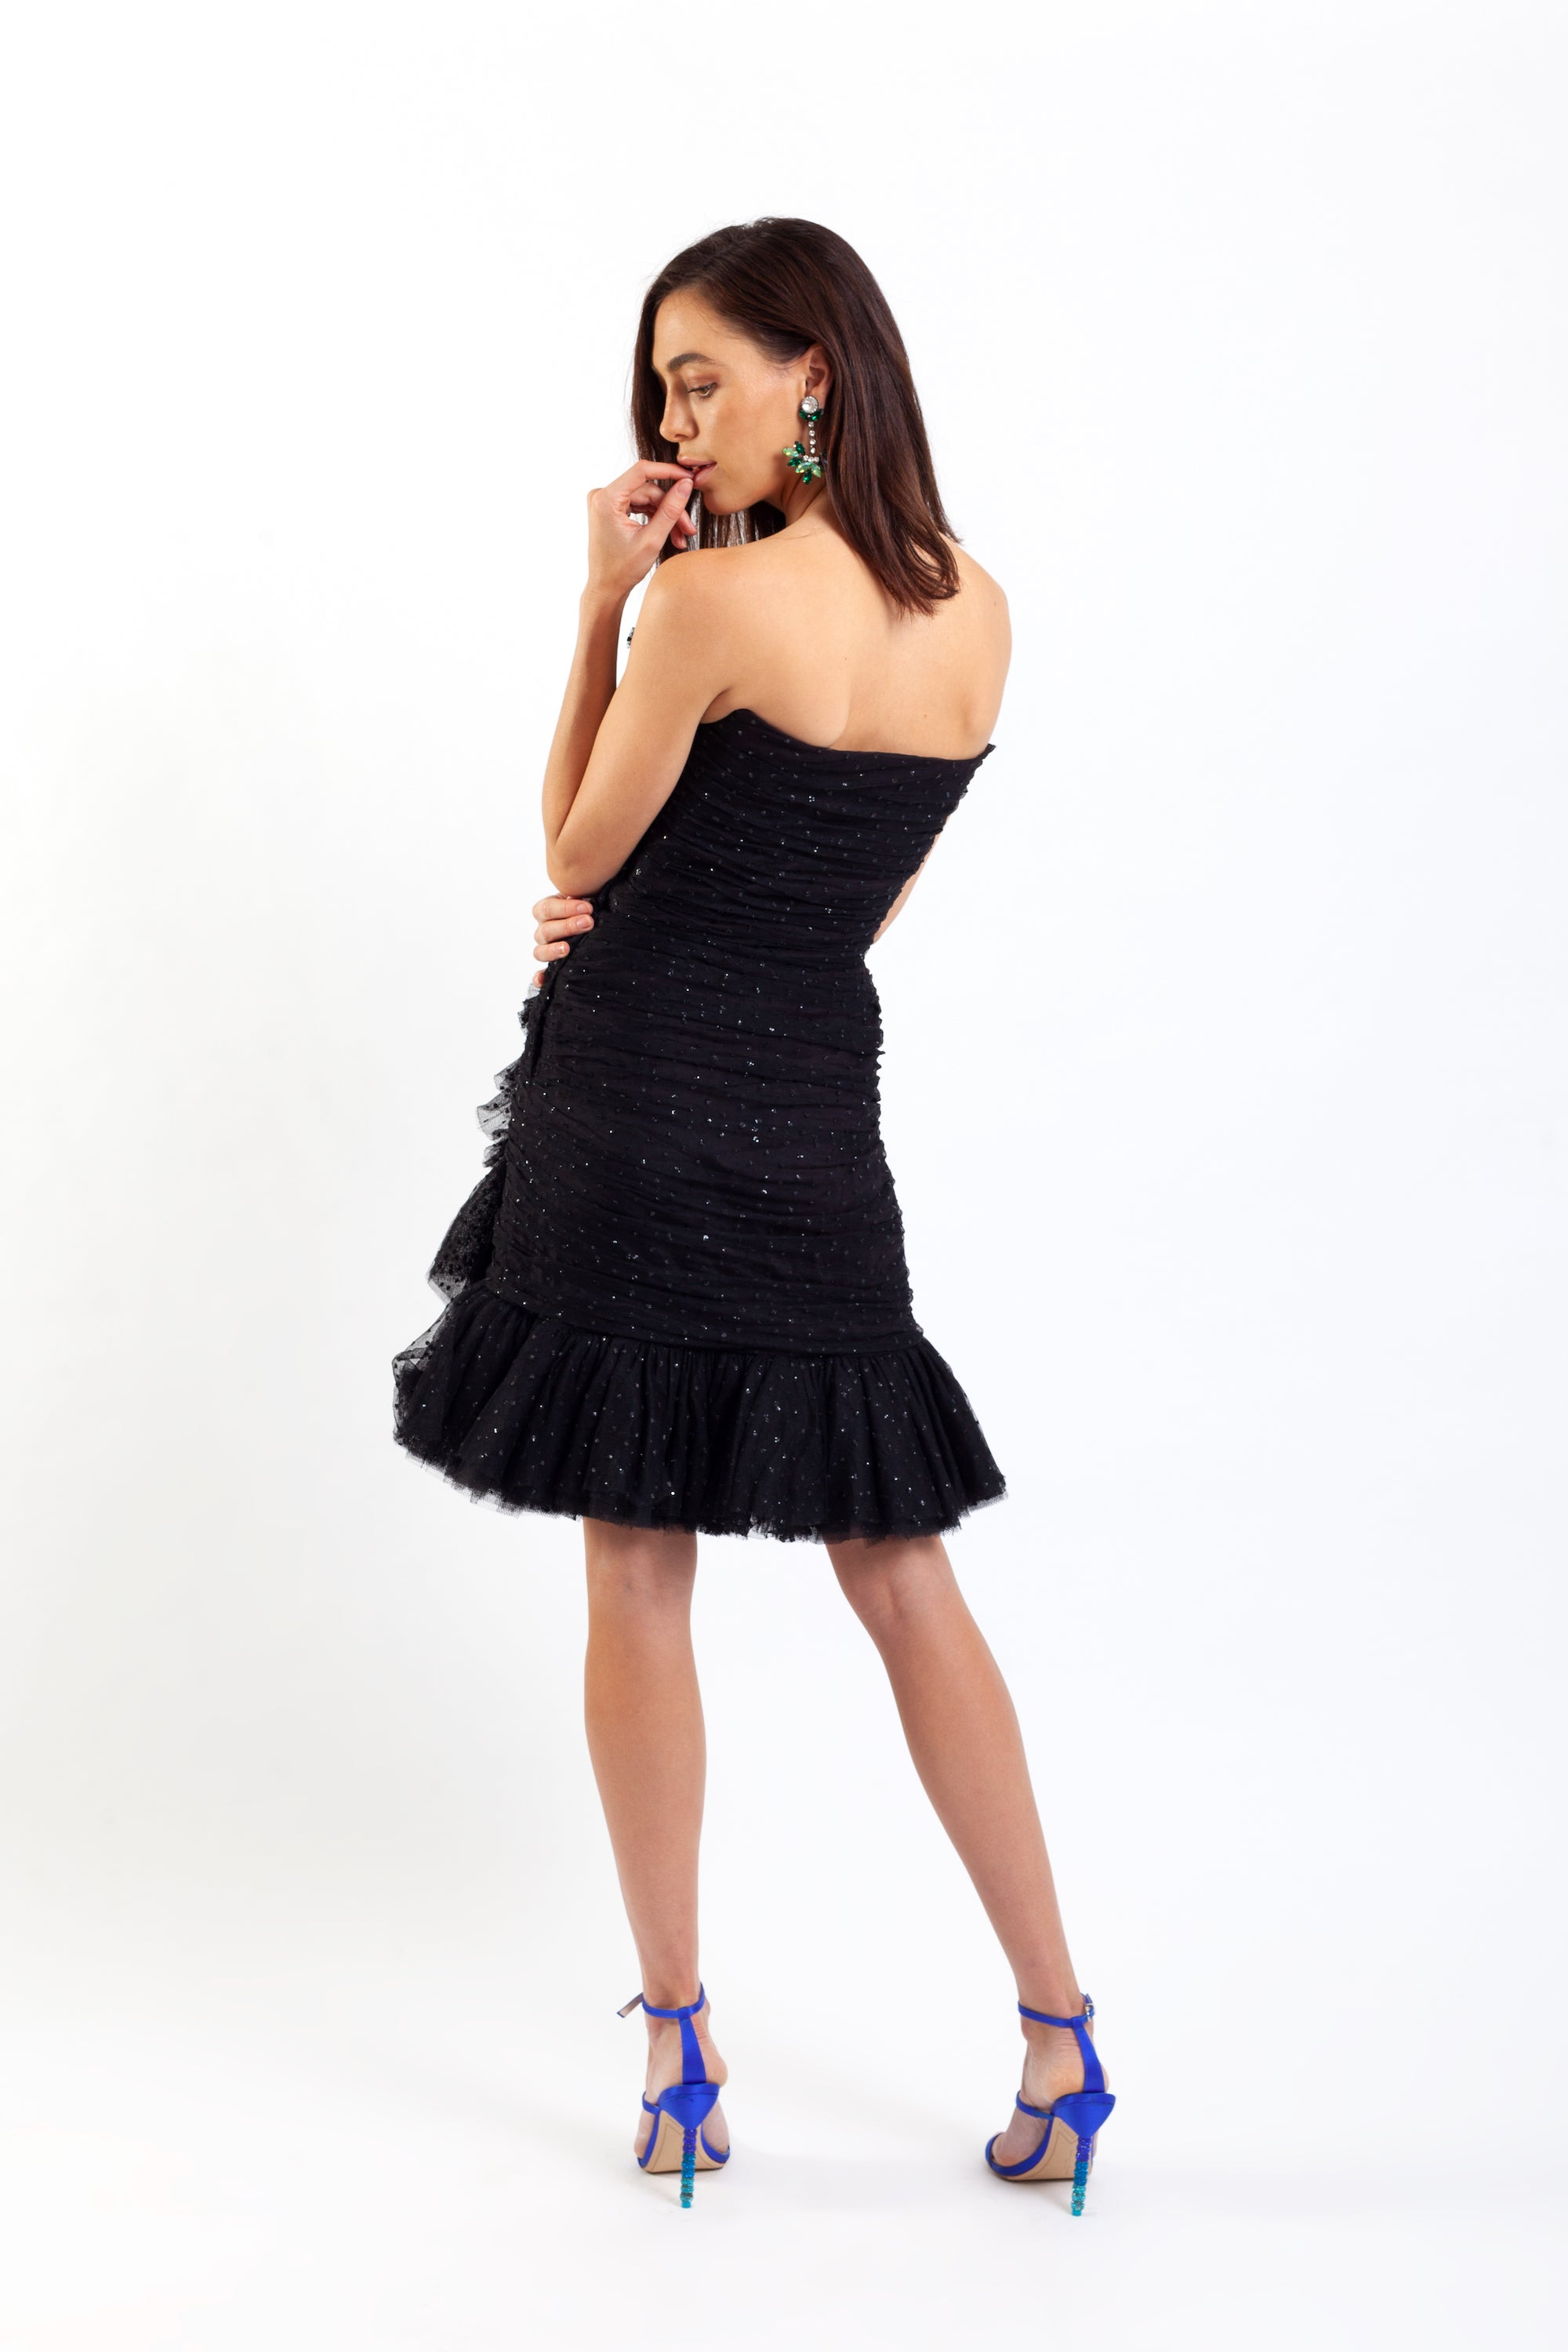 Lorcan Mullany <br> 80's strapless glitter tulle party dress